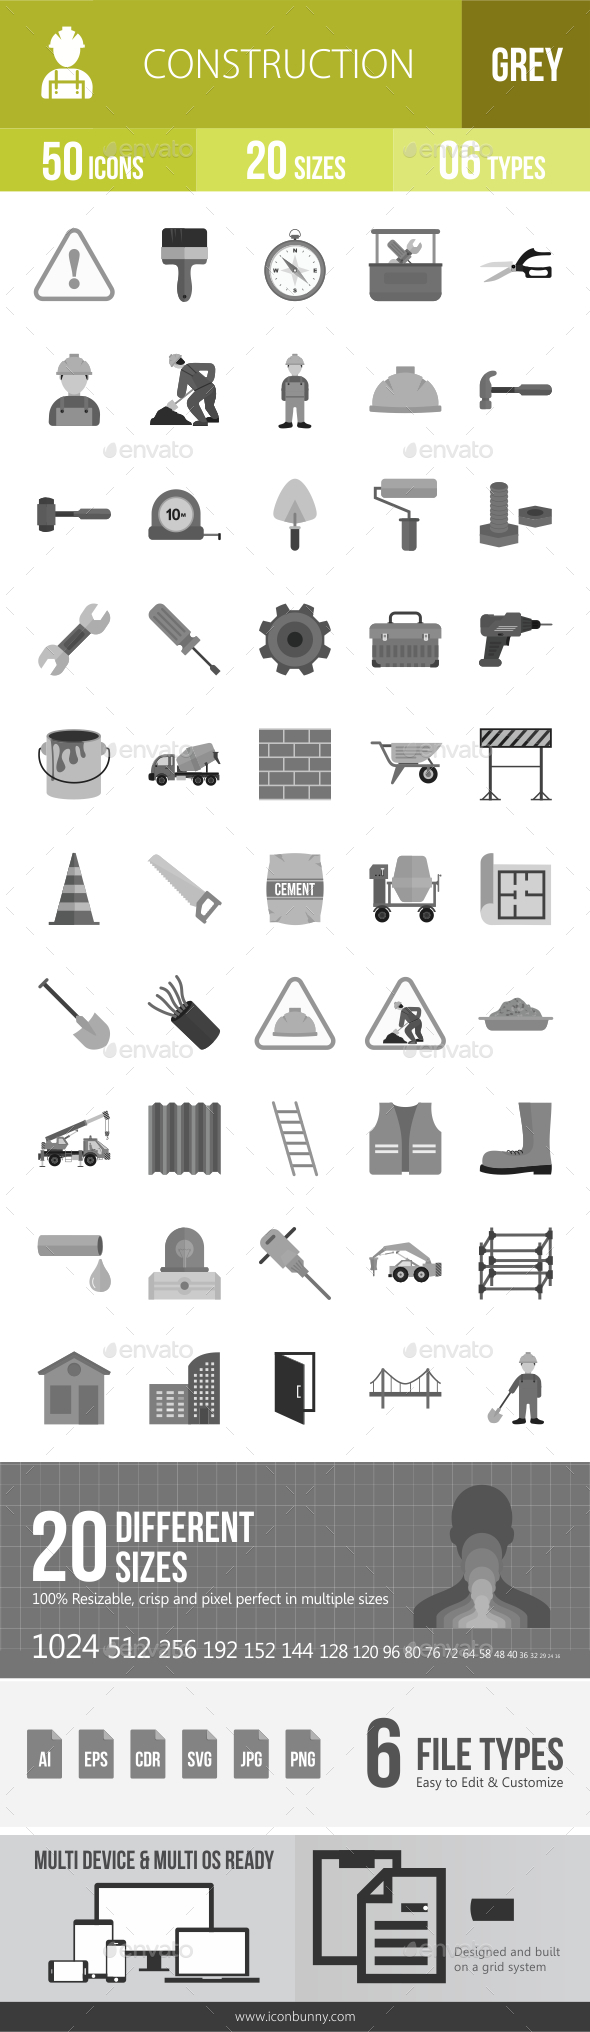 50 Construction Grey Scale Icons - Icons